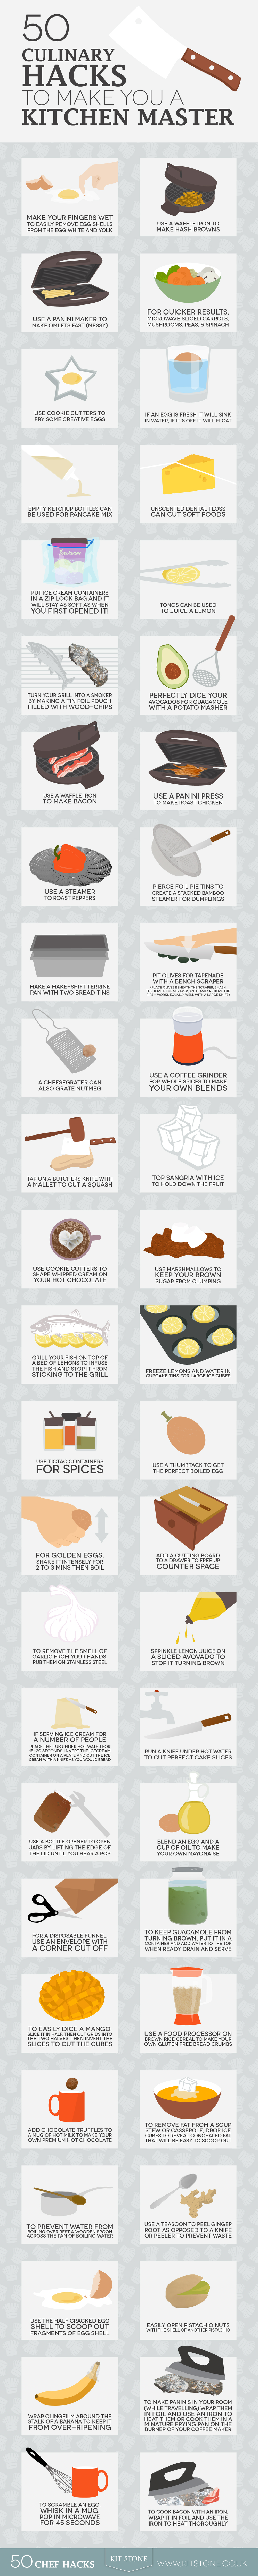 50 Culinary Hacks To Cook Like A Pro Infographic